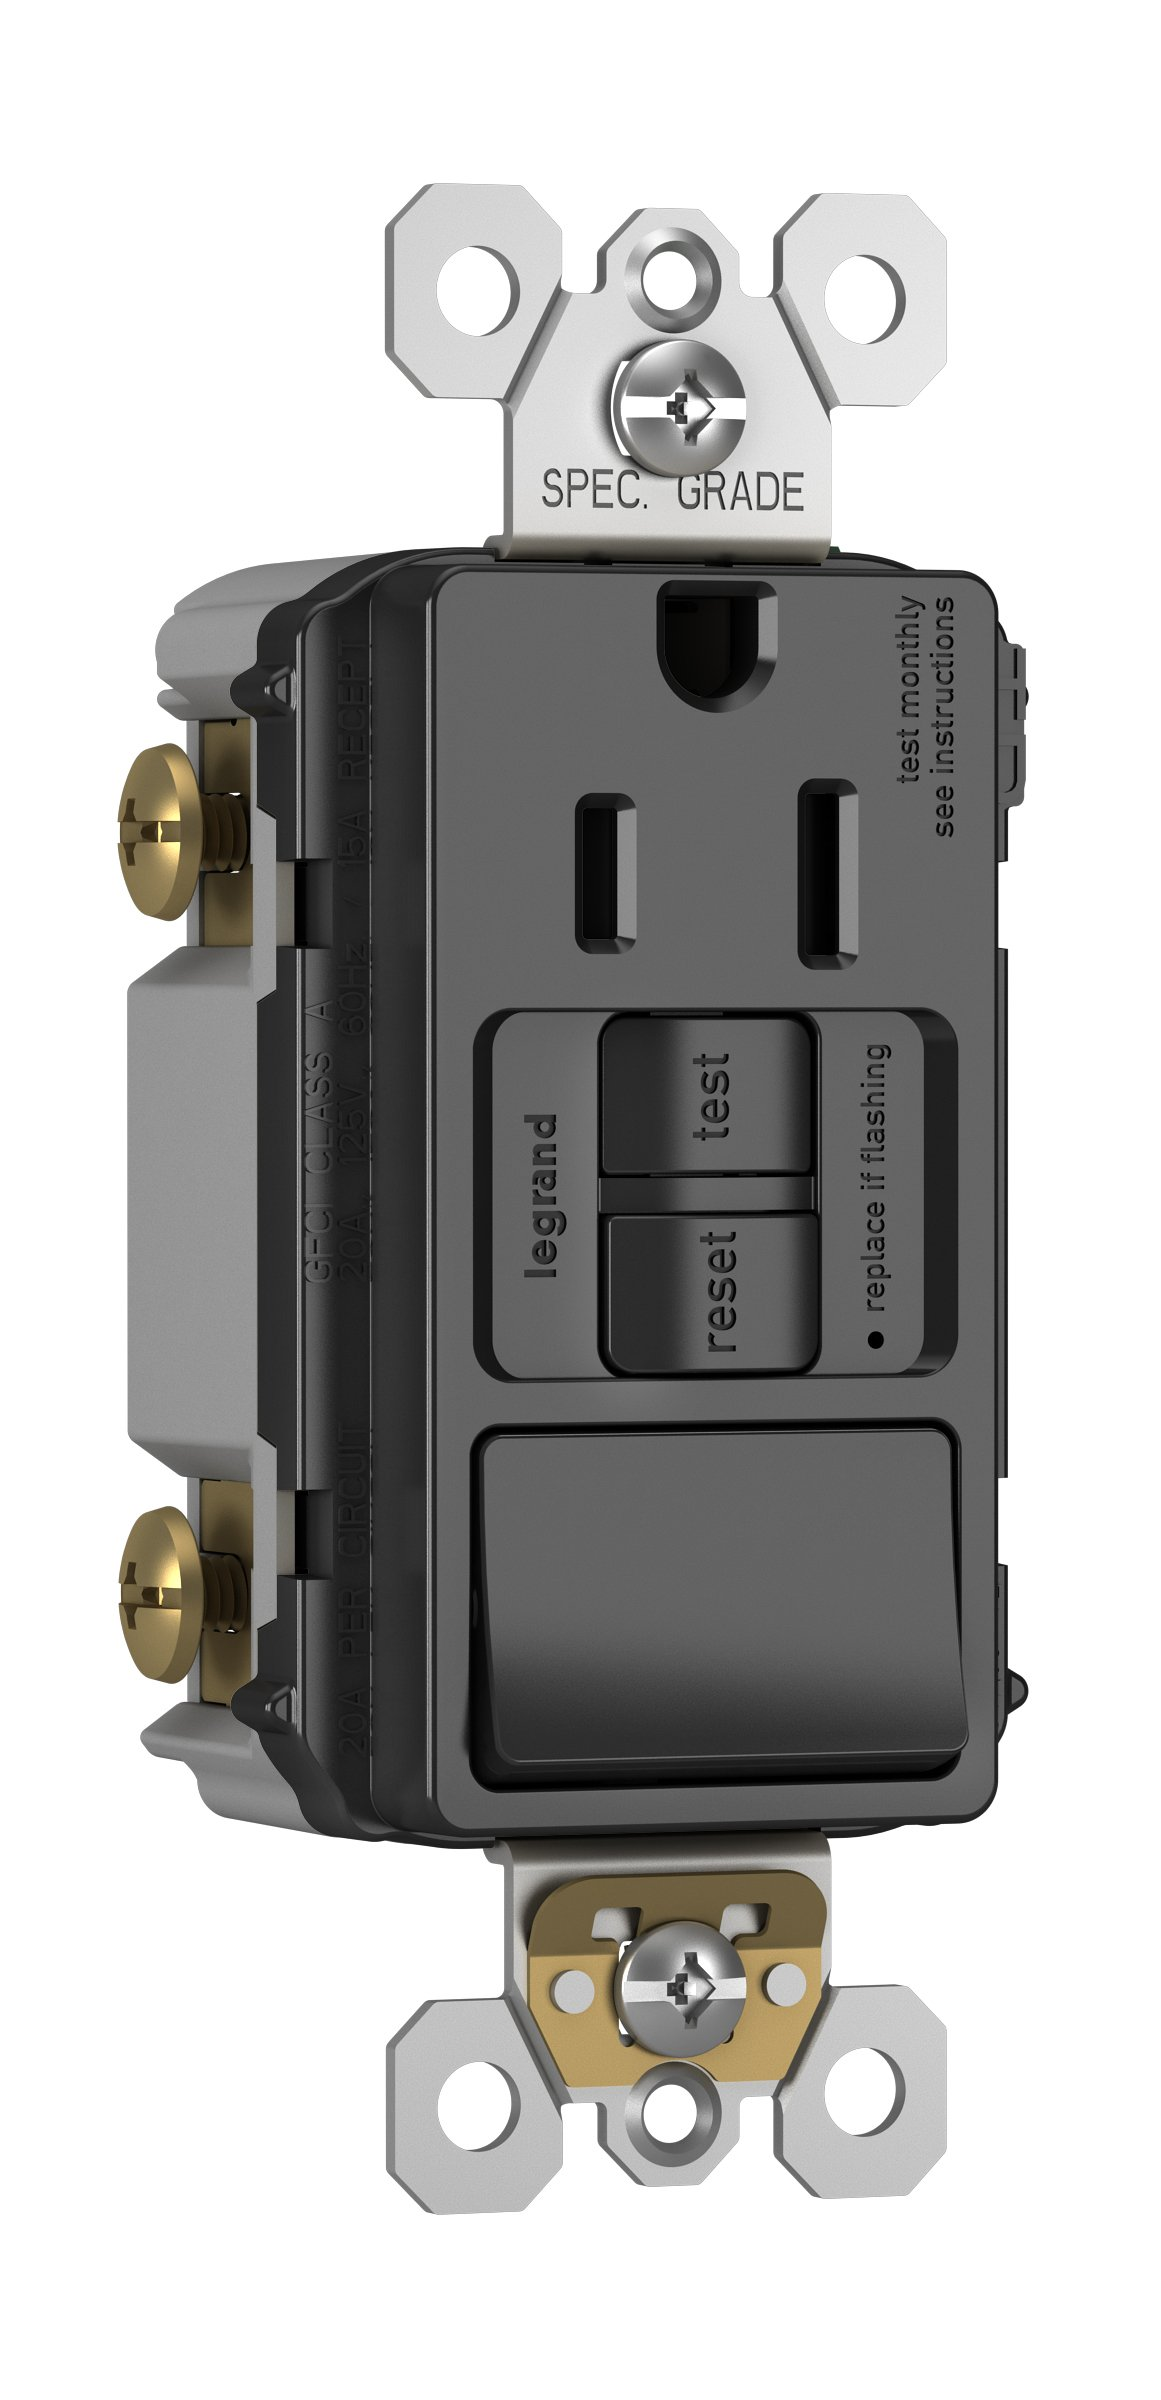 Cheap Gfci Outlet Test Find Deals On Line At Wiring A Receptacle Get Quotations Legrand Pass Seymour 1597swttrbkcc4 Tamper Resistant Combo With Switch Self